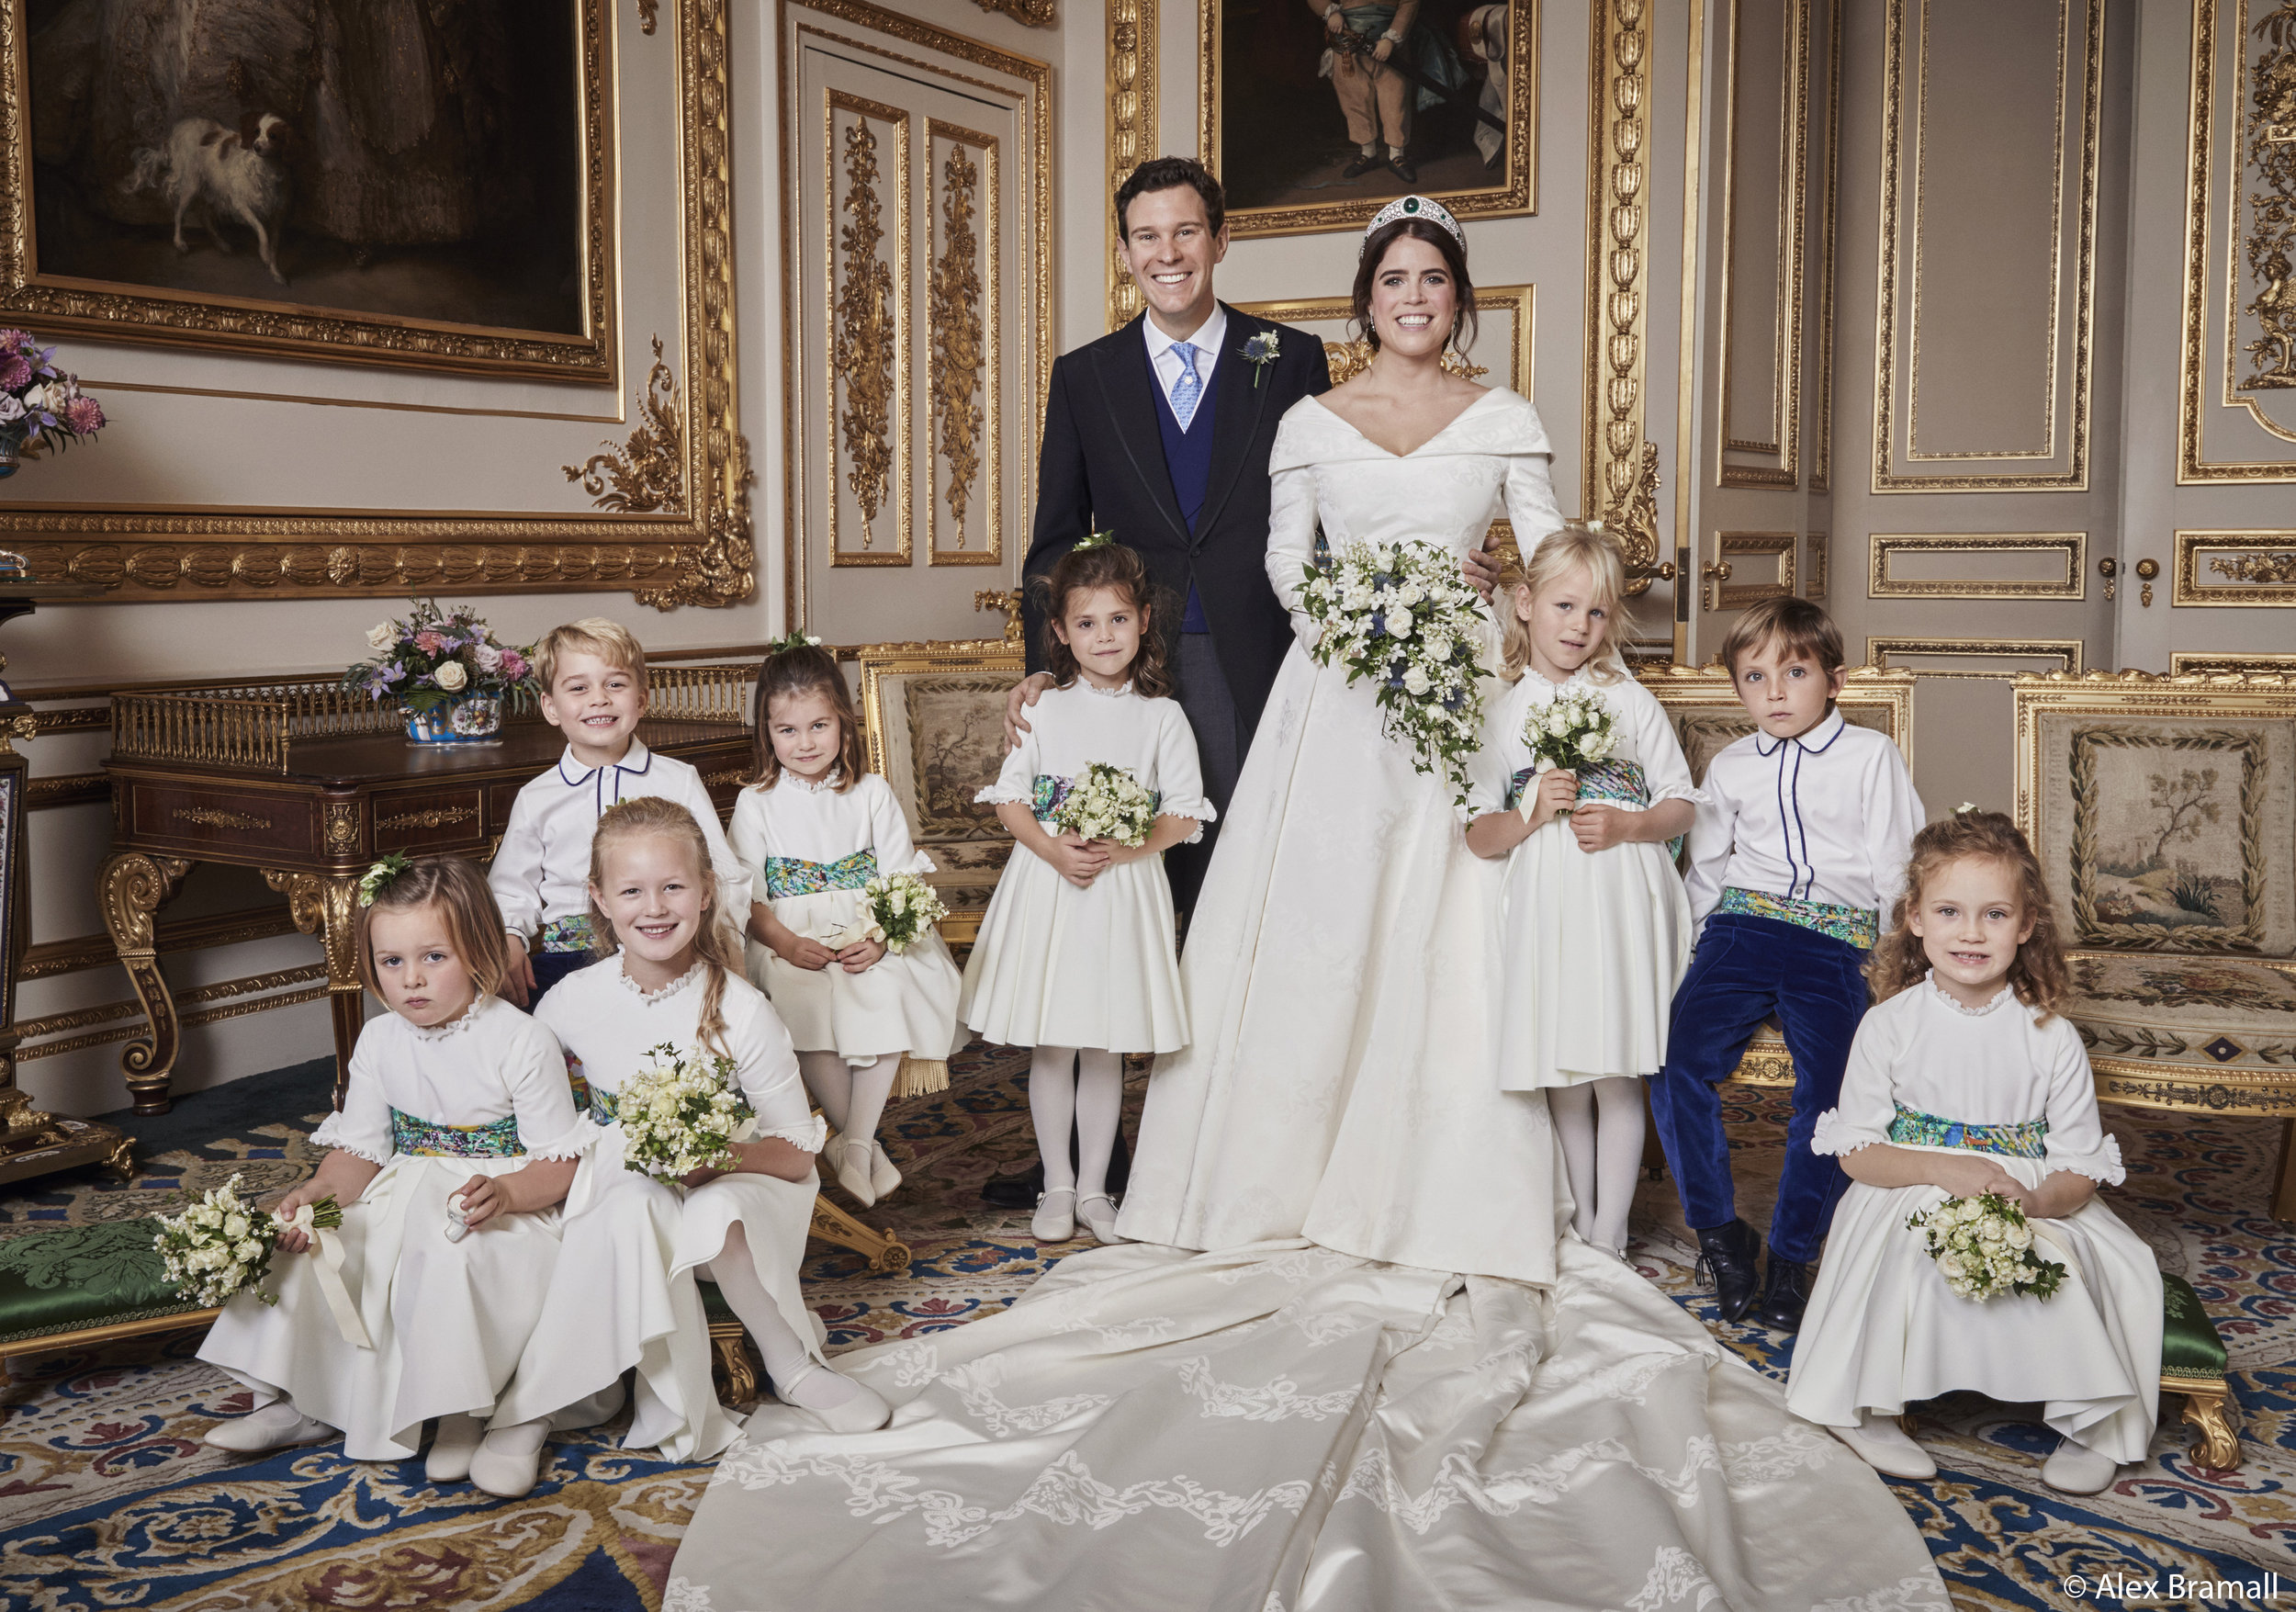 Das Brautpaar mit seinen Blumenkindern. Hintere Reihe: Prinz George, Prinzessin Charlotte, Robbie Williams' Tochter Theodora Williams, Isla Phillips und Louis De Givenchy.  Vordere Reihe: Mia Tindall, Savannah Phillips und Maud Windsor.  ©Royal Family / Alex Bramall